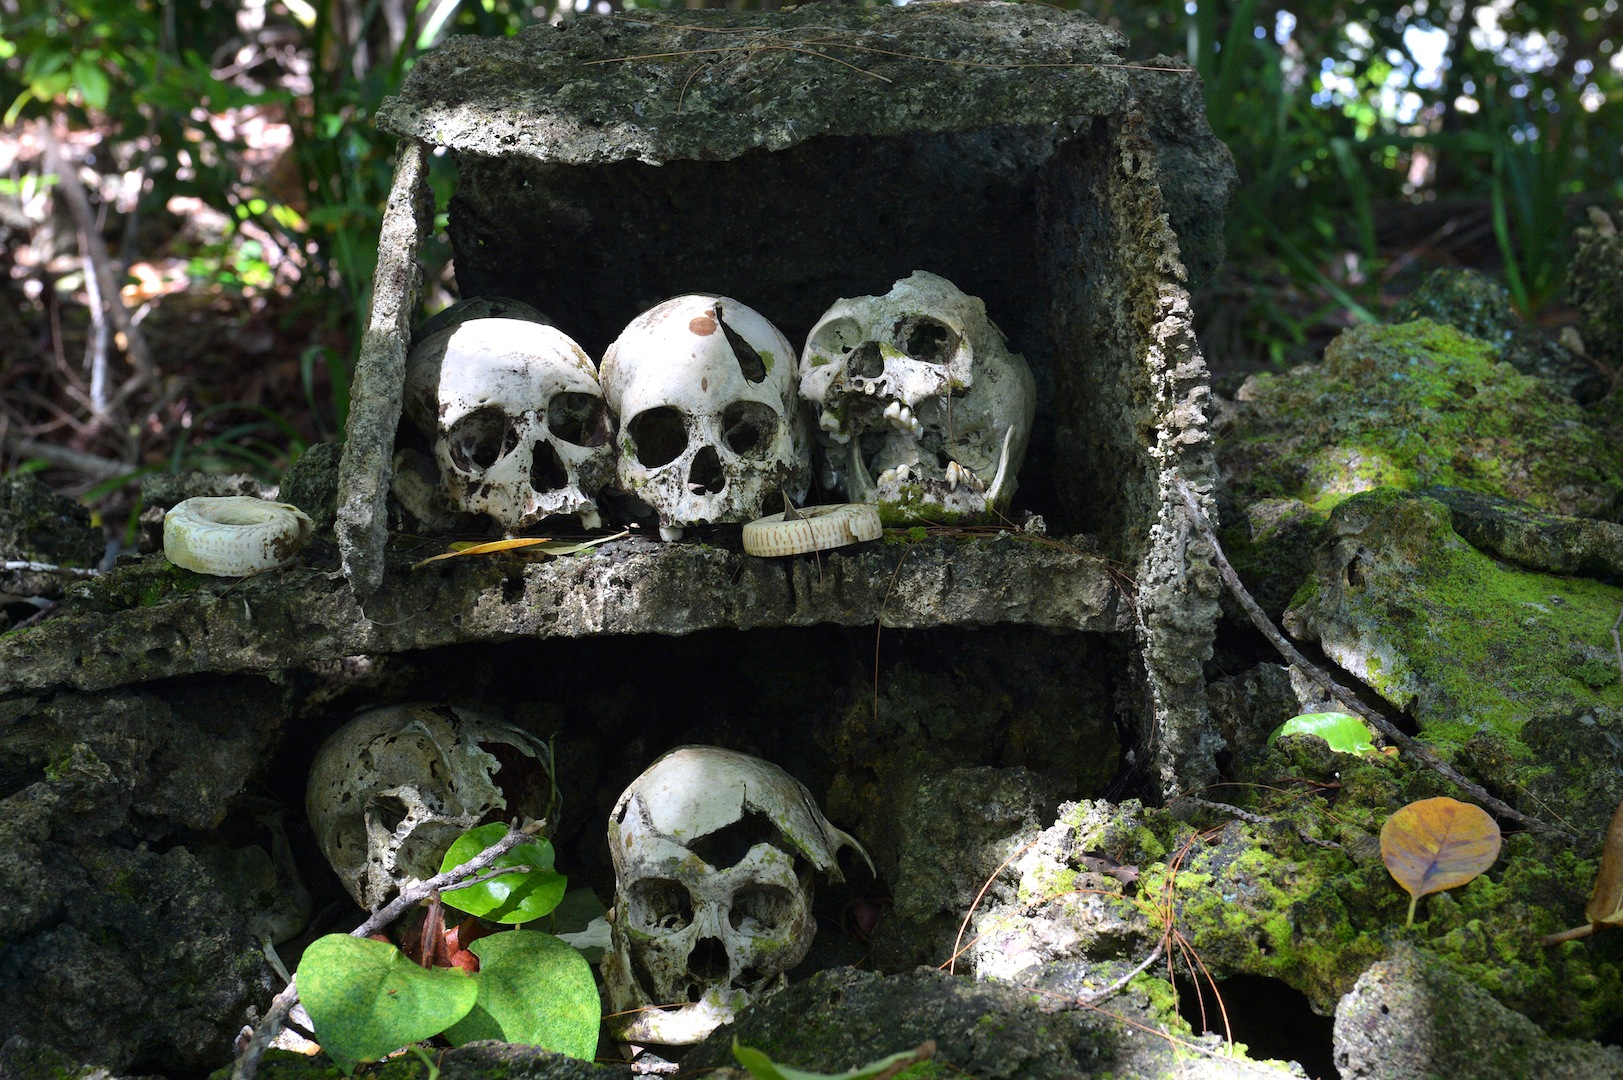 13 – Skulls of ancient chieftains (on top) and their victims (below) – Skull Island, Vona Vona Lagoon, Western Province - Photo credit to Solomon Islands Visitors Bureau (SIVB)